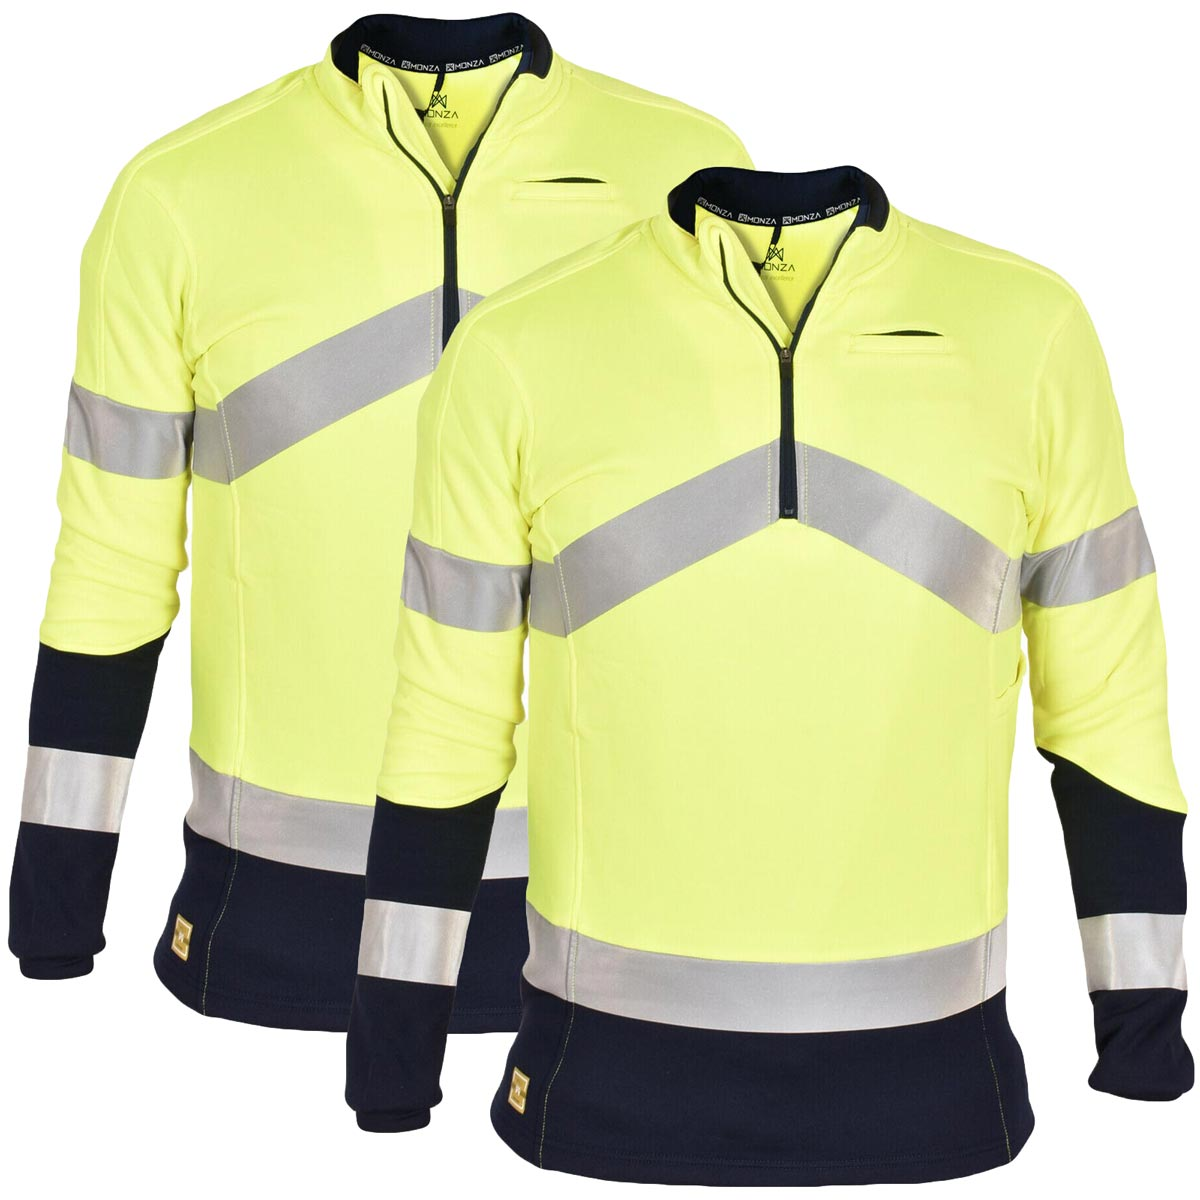 2 Pack Hi Viz High Visibility Polo Shirt